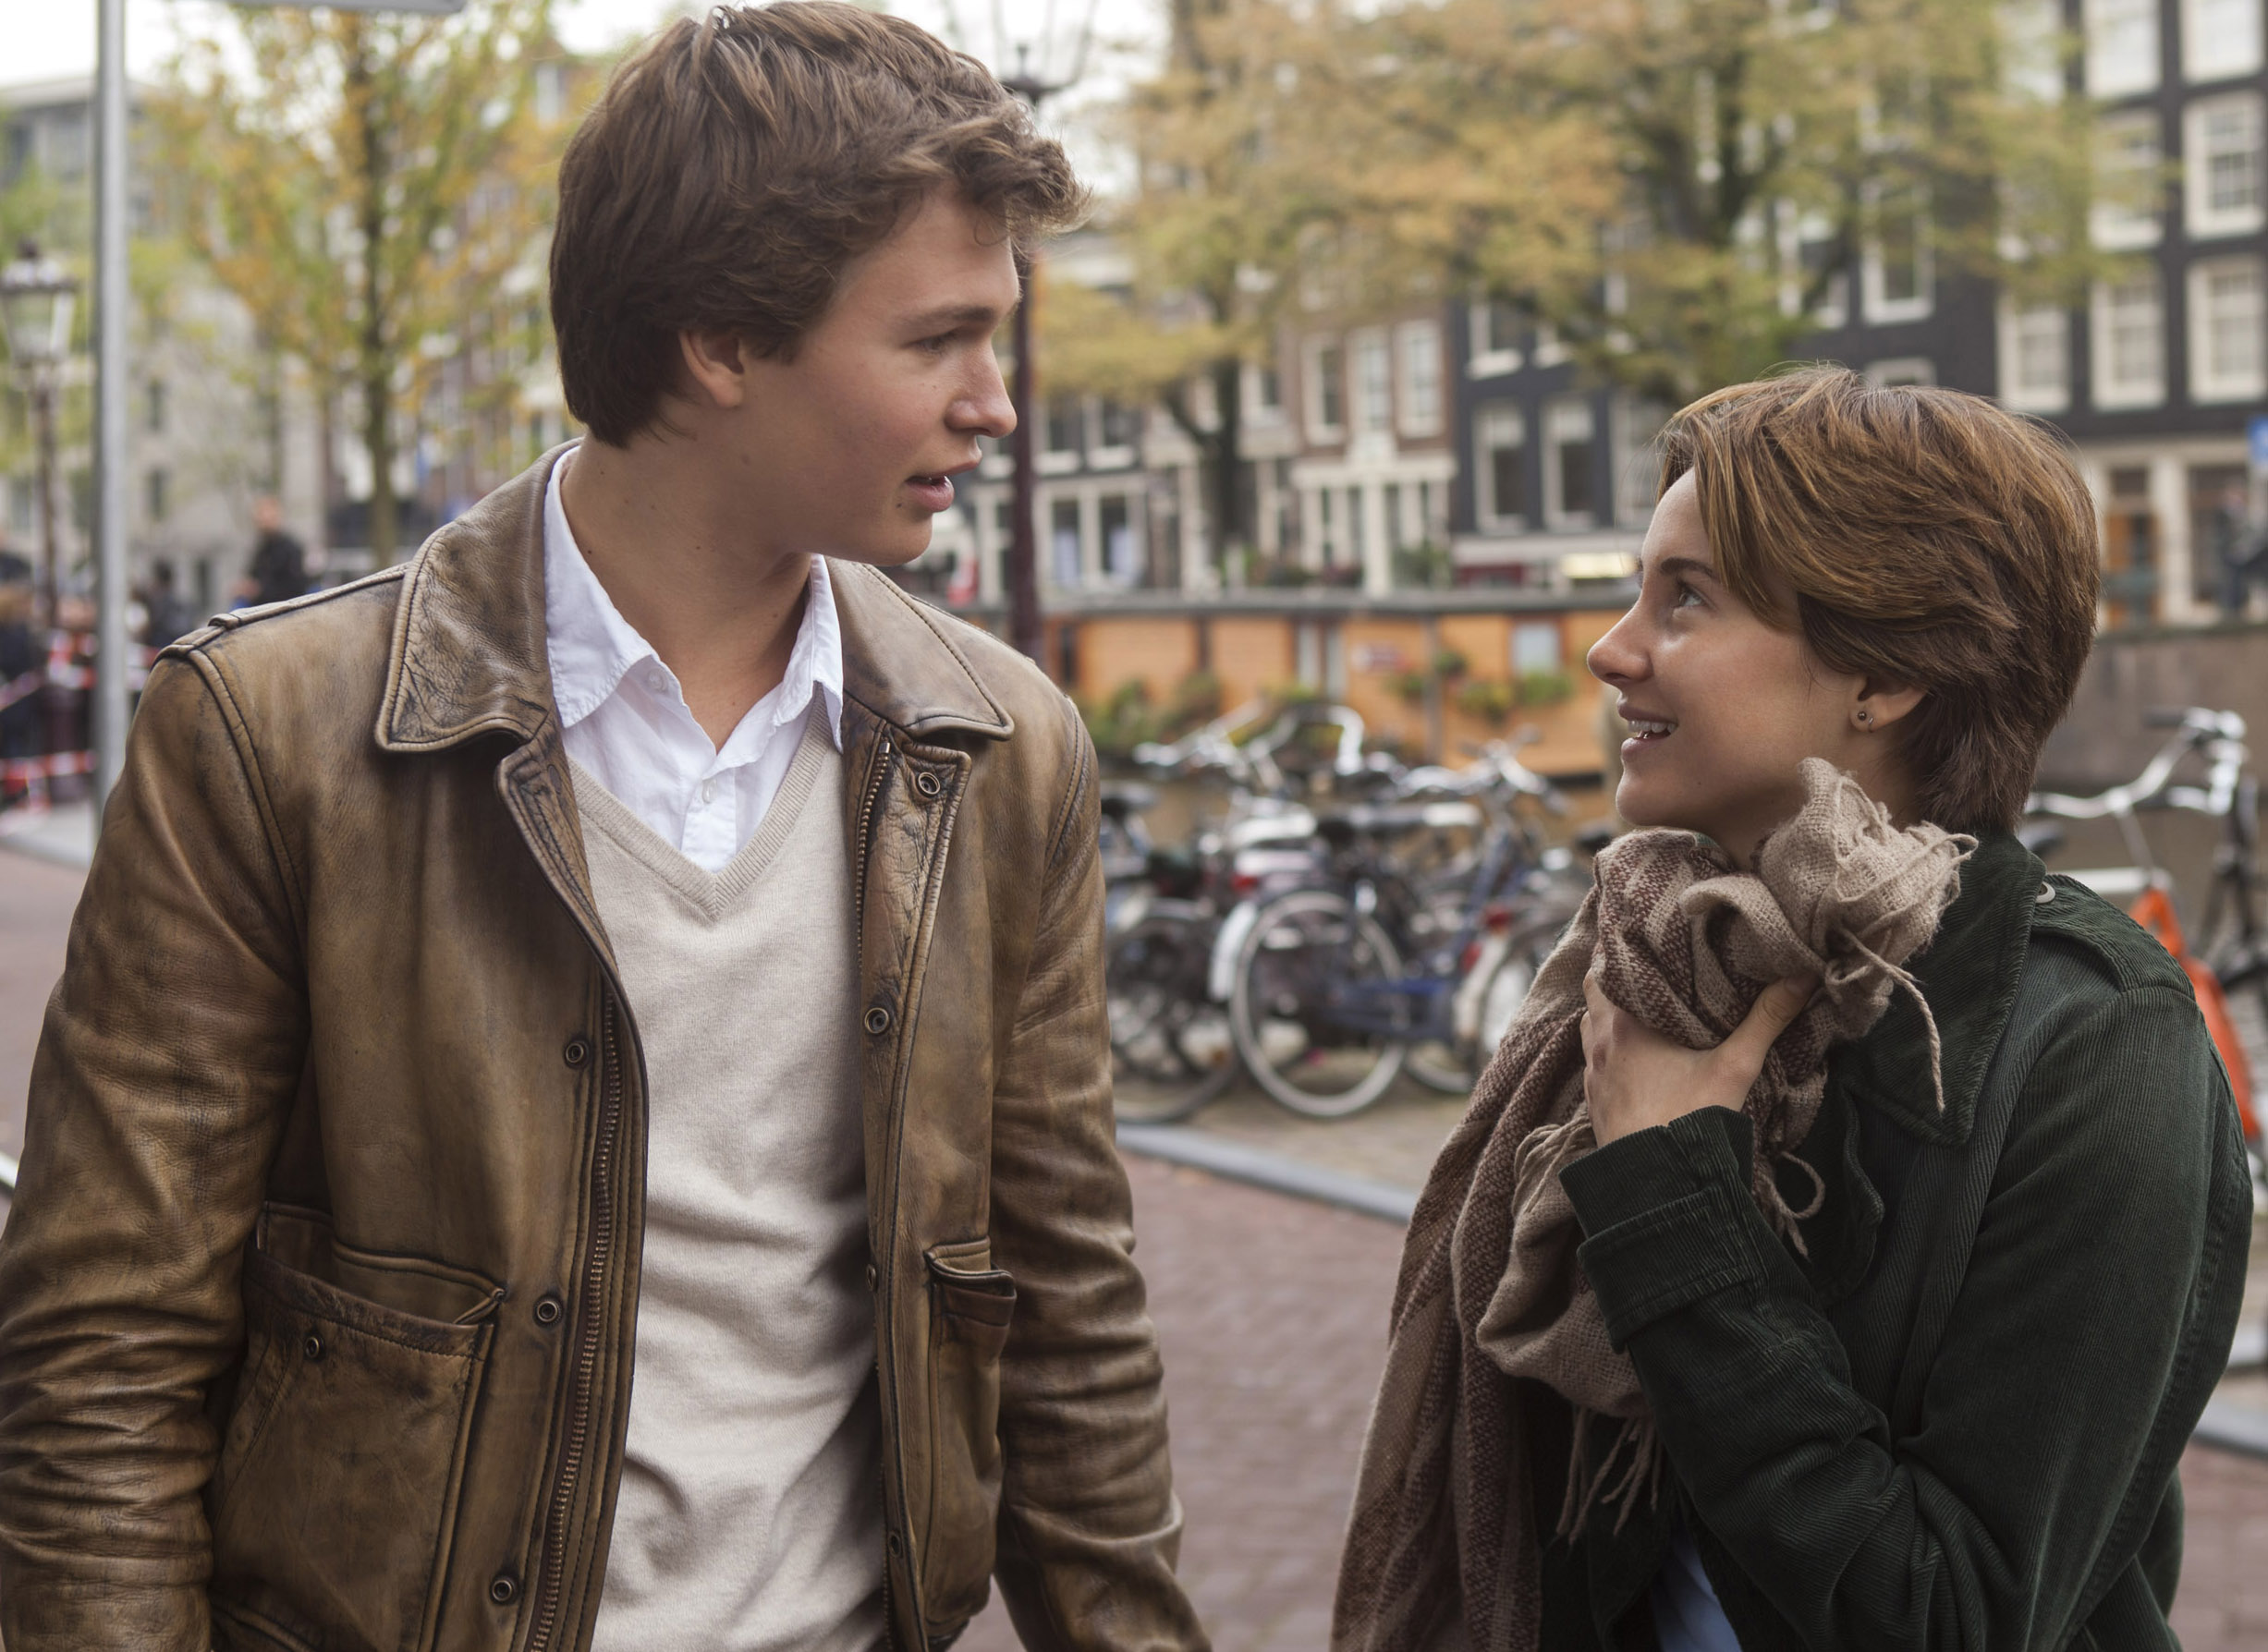 Ansel Elgort and Shailene Woodley in TFIOS